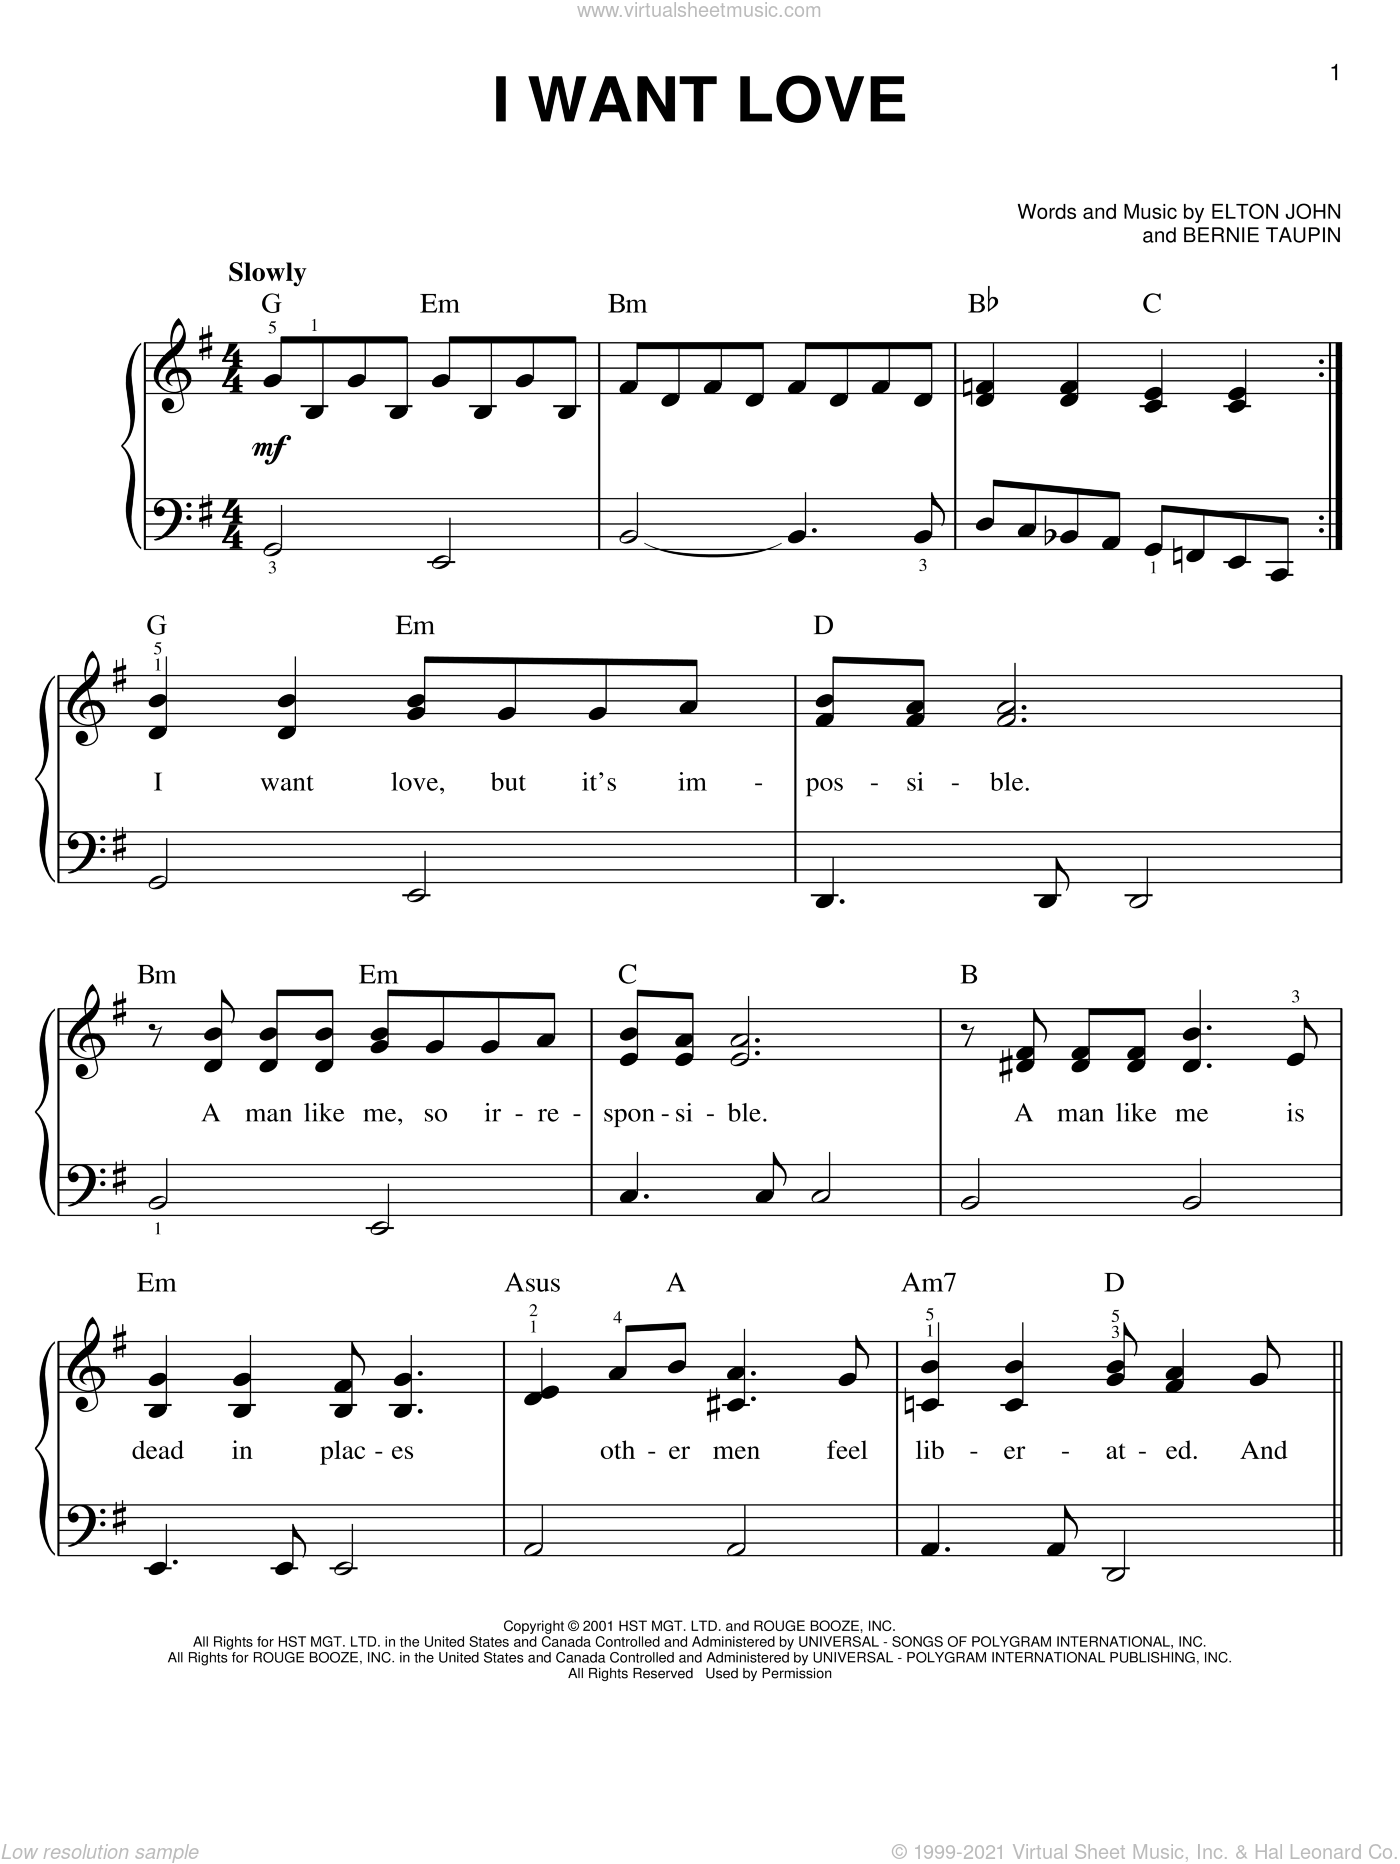 I Want Love sheet music for piano solo by Elton John and Bernie Taupin, easy skill level